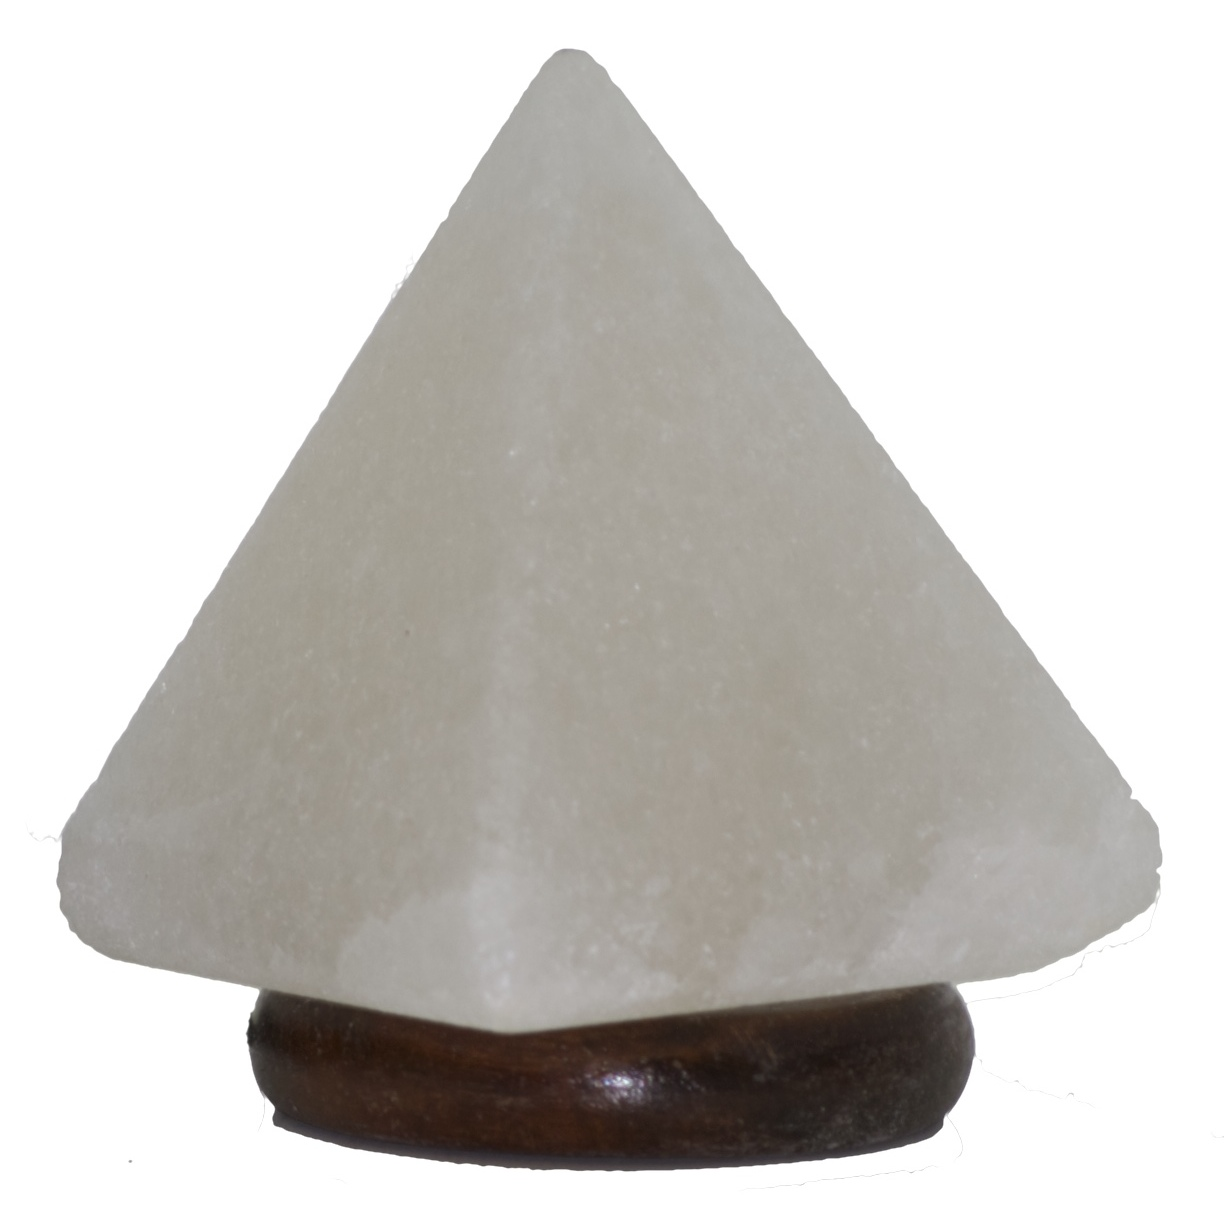 Himalayan Salt Lamps Usb : Himalayan Salt Lamp, USB - Pyramid